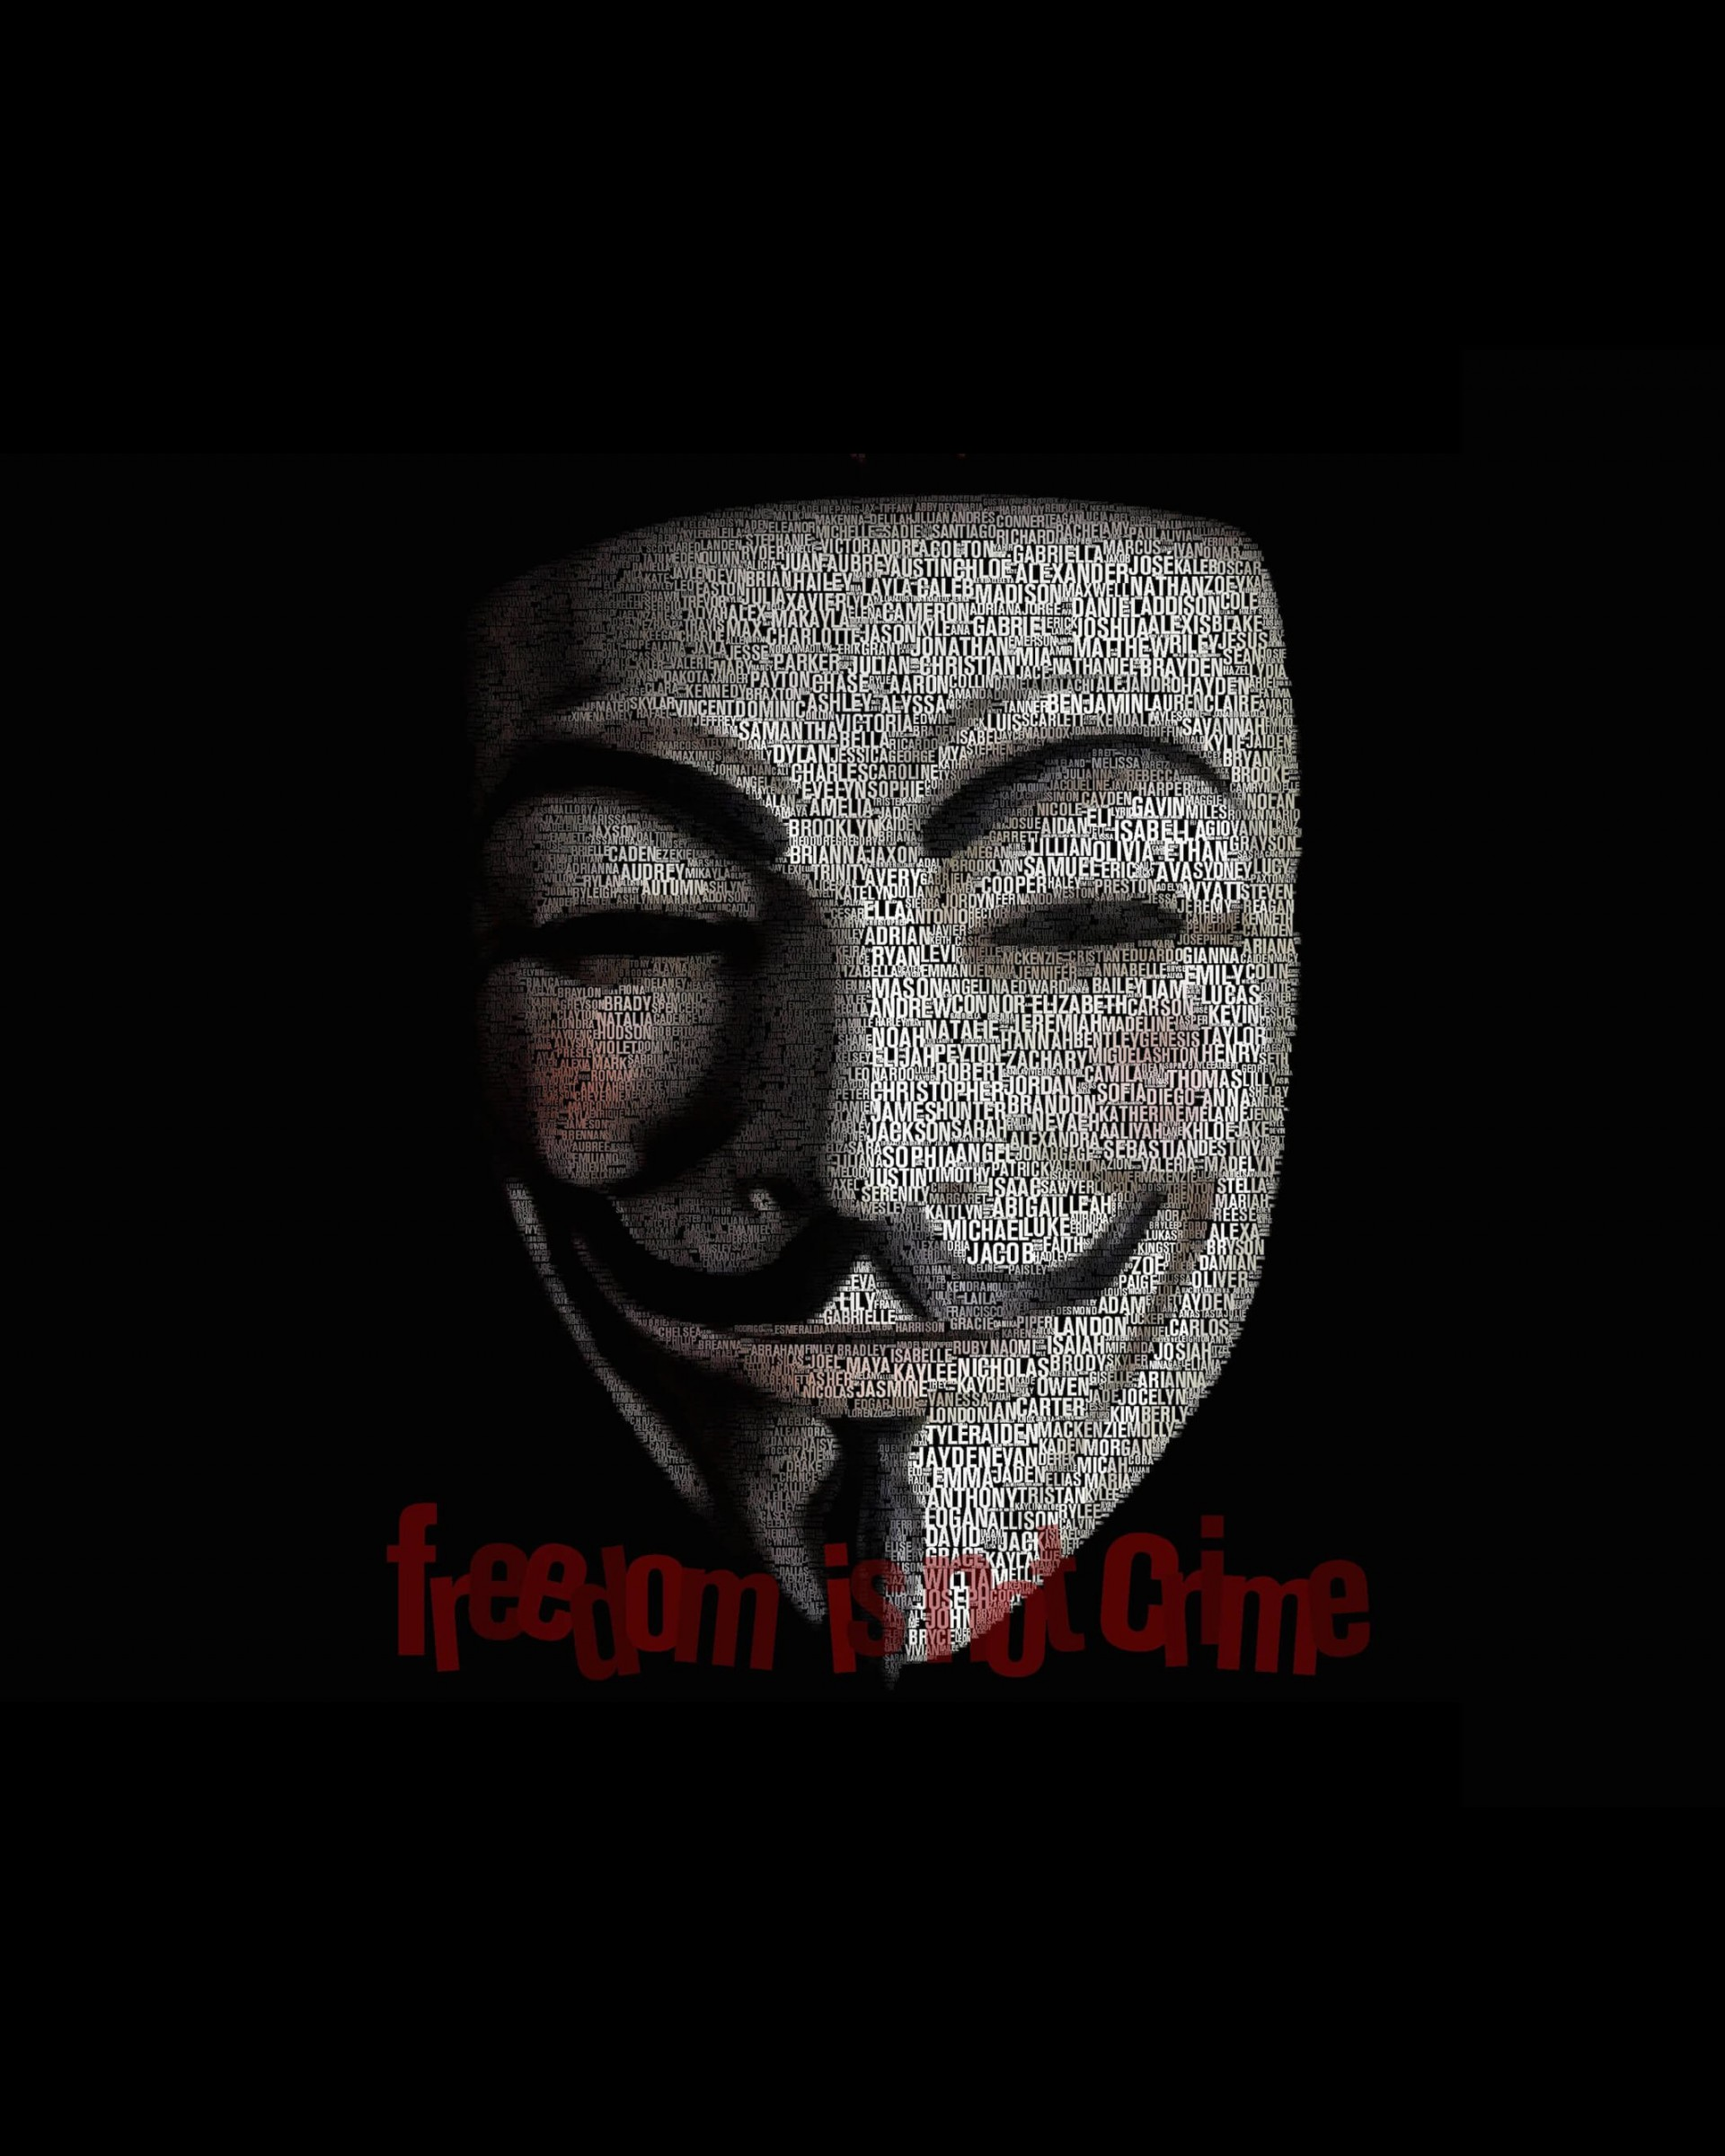 Anonymous Typeface Portrait Wallpaper for Google Nexus 7